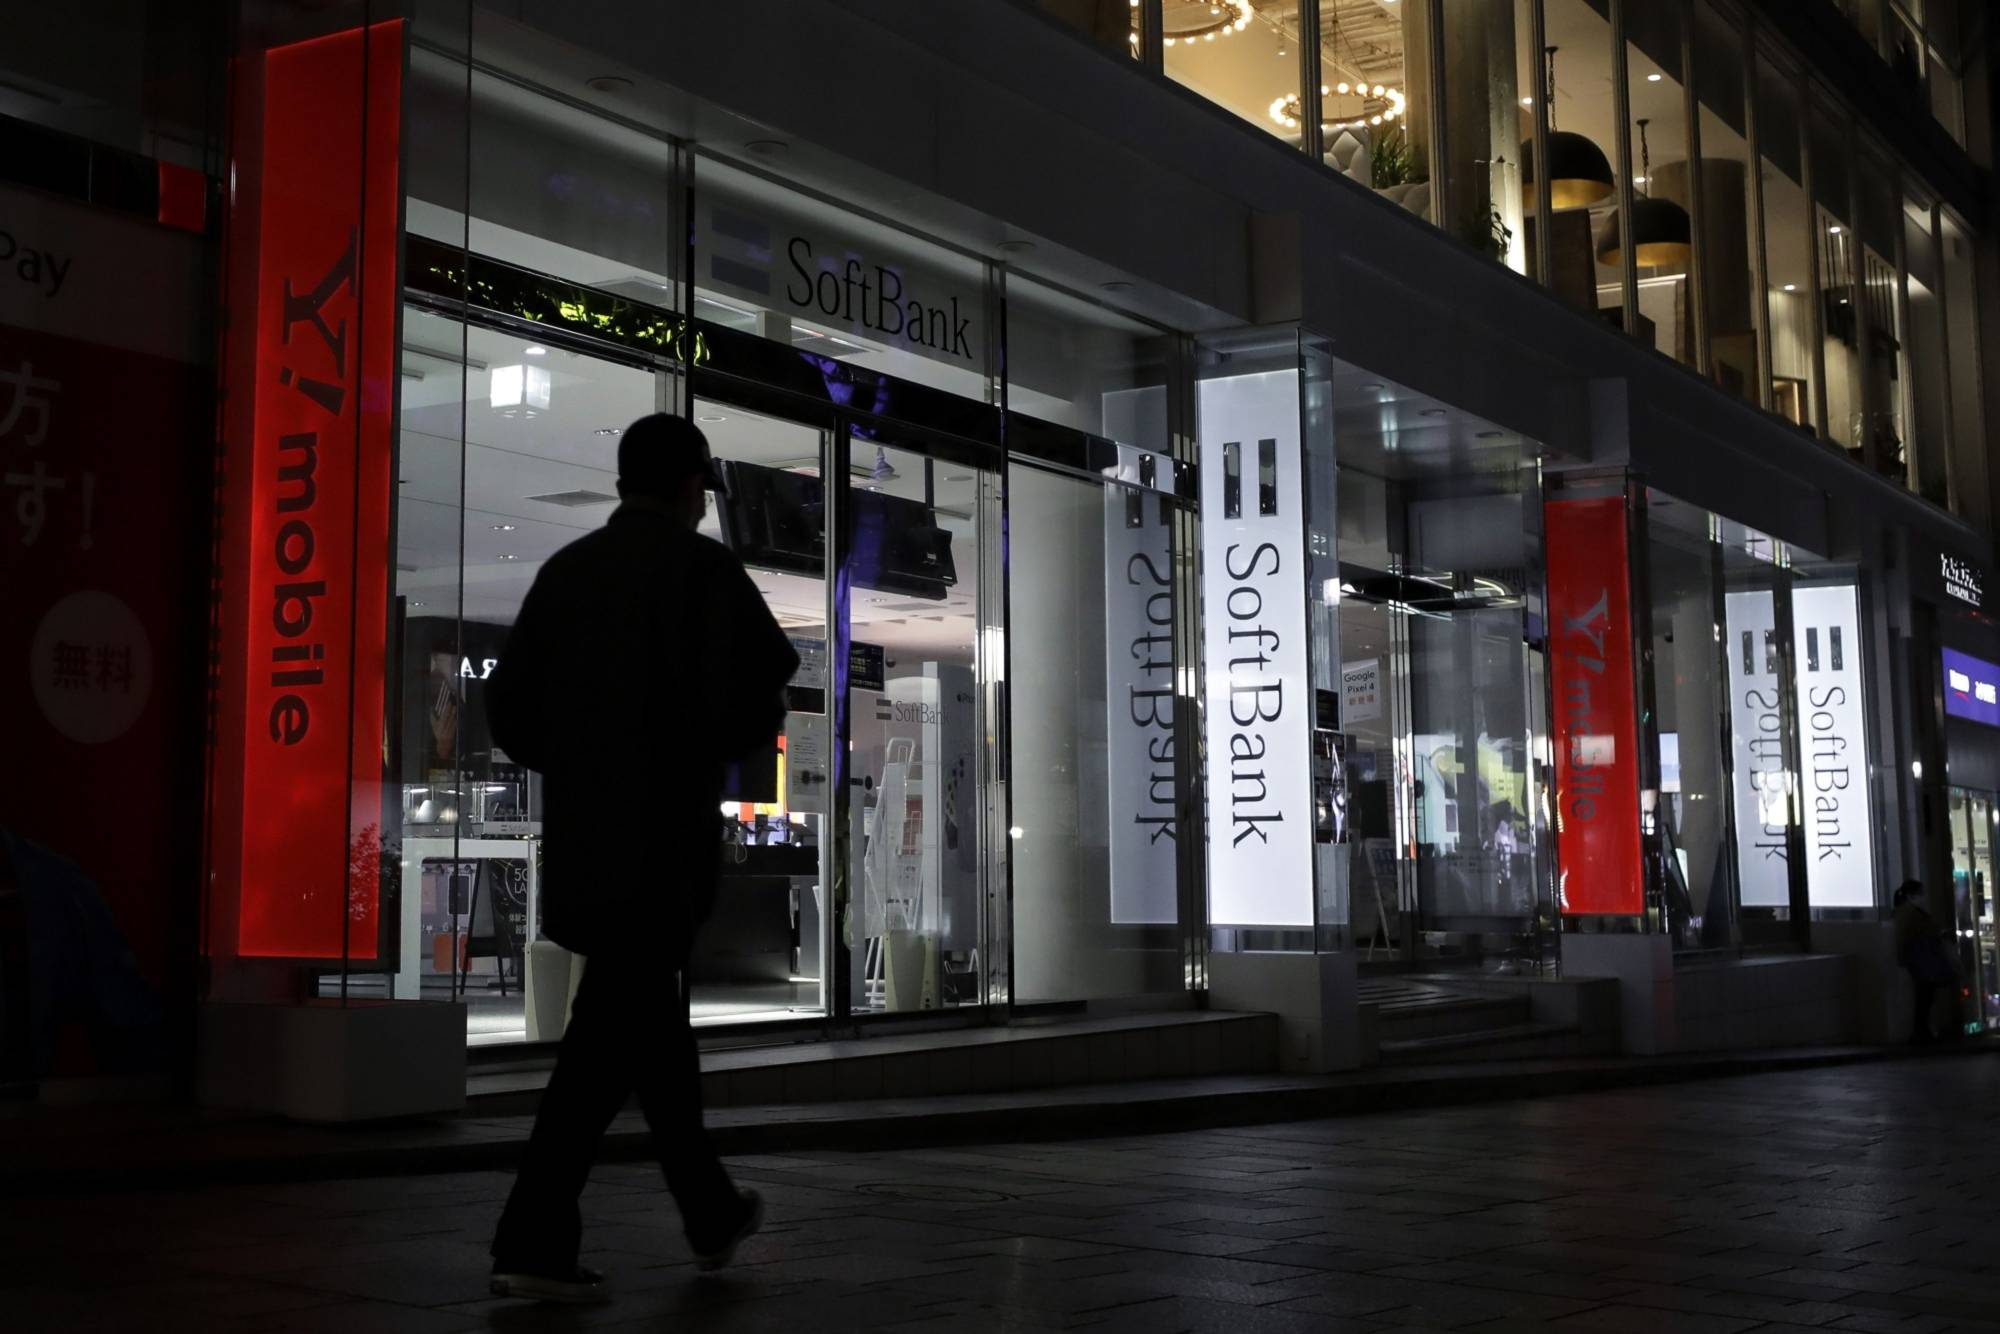 A pedestrian walks past illuminated signs for SoftBank displayed outside a store at night in Tokyo on April 14. | BLOOMBERG